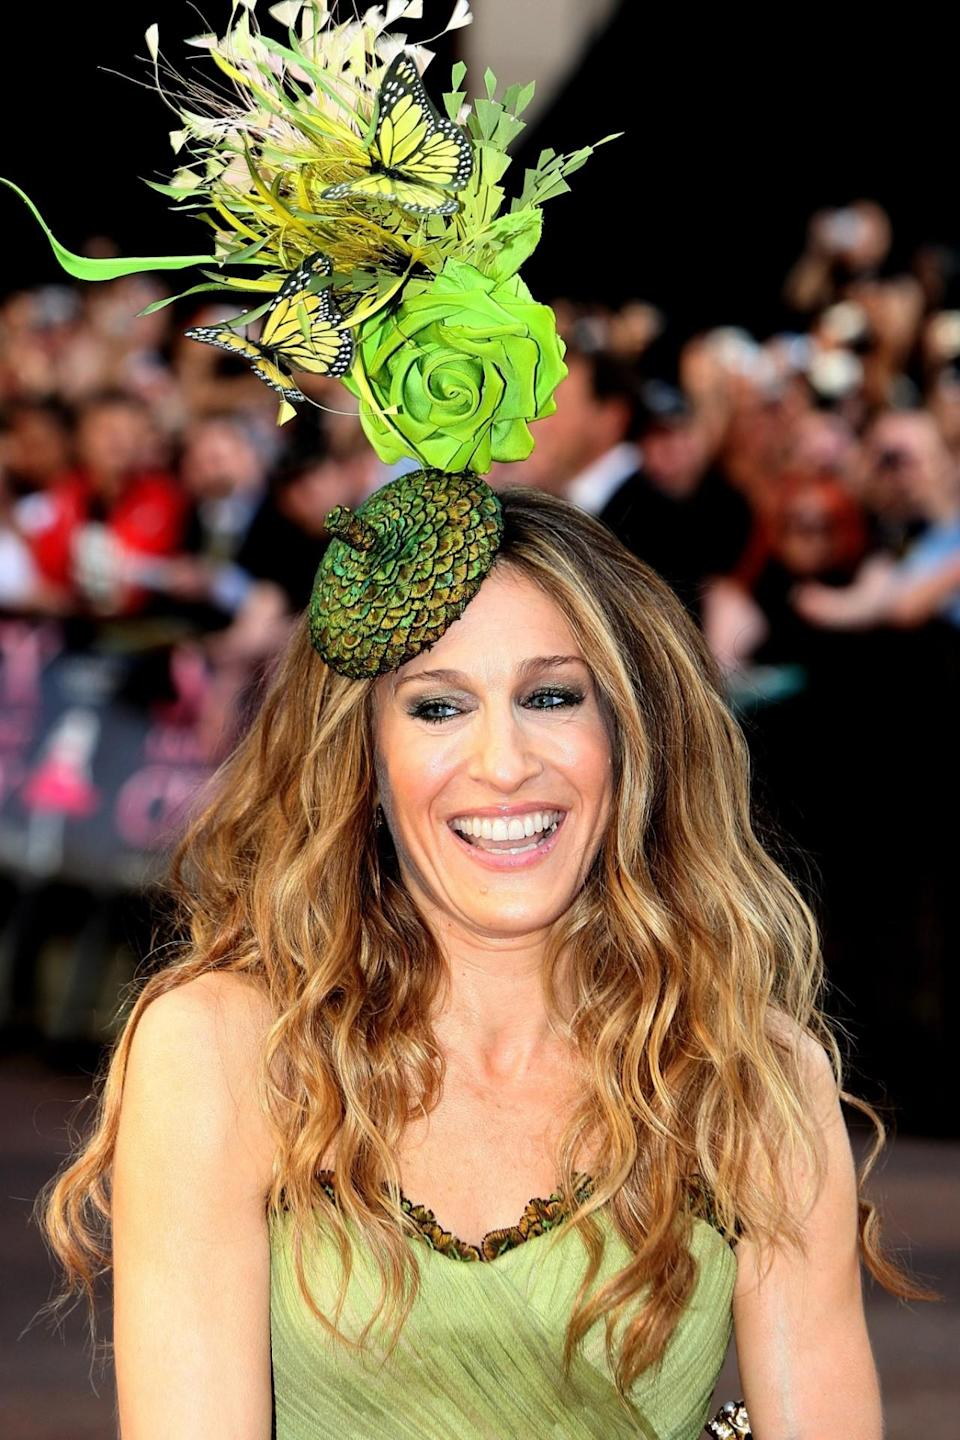 <p>Wearing a fascinator comprised of a giant acorn, roses, and butterflies, she outshone the floral center pieces at the London premiere of 'Sex And The City' in May 2008. </p>